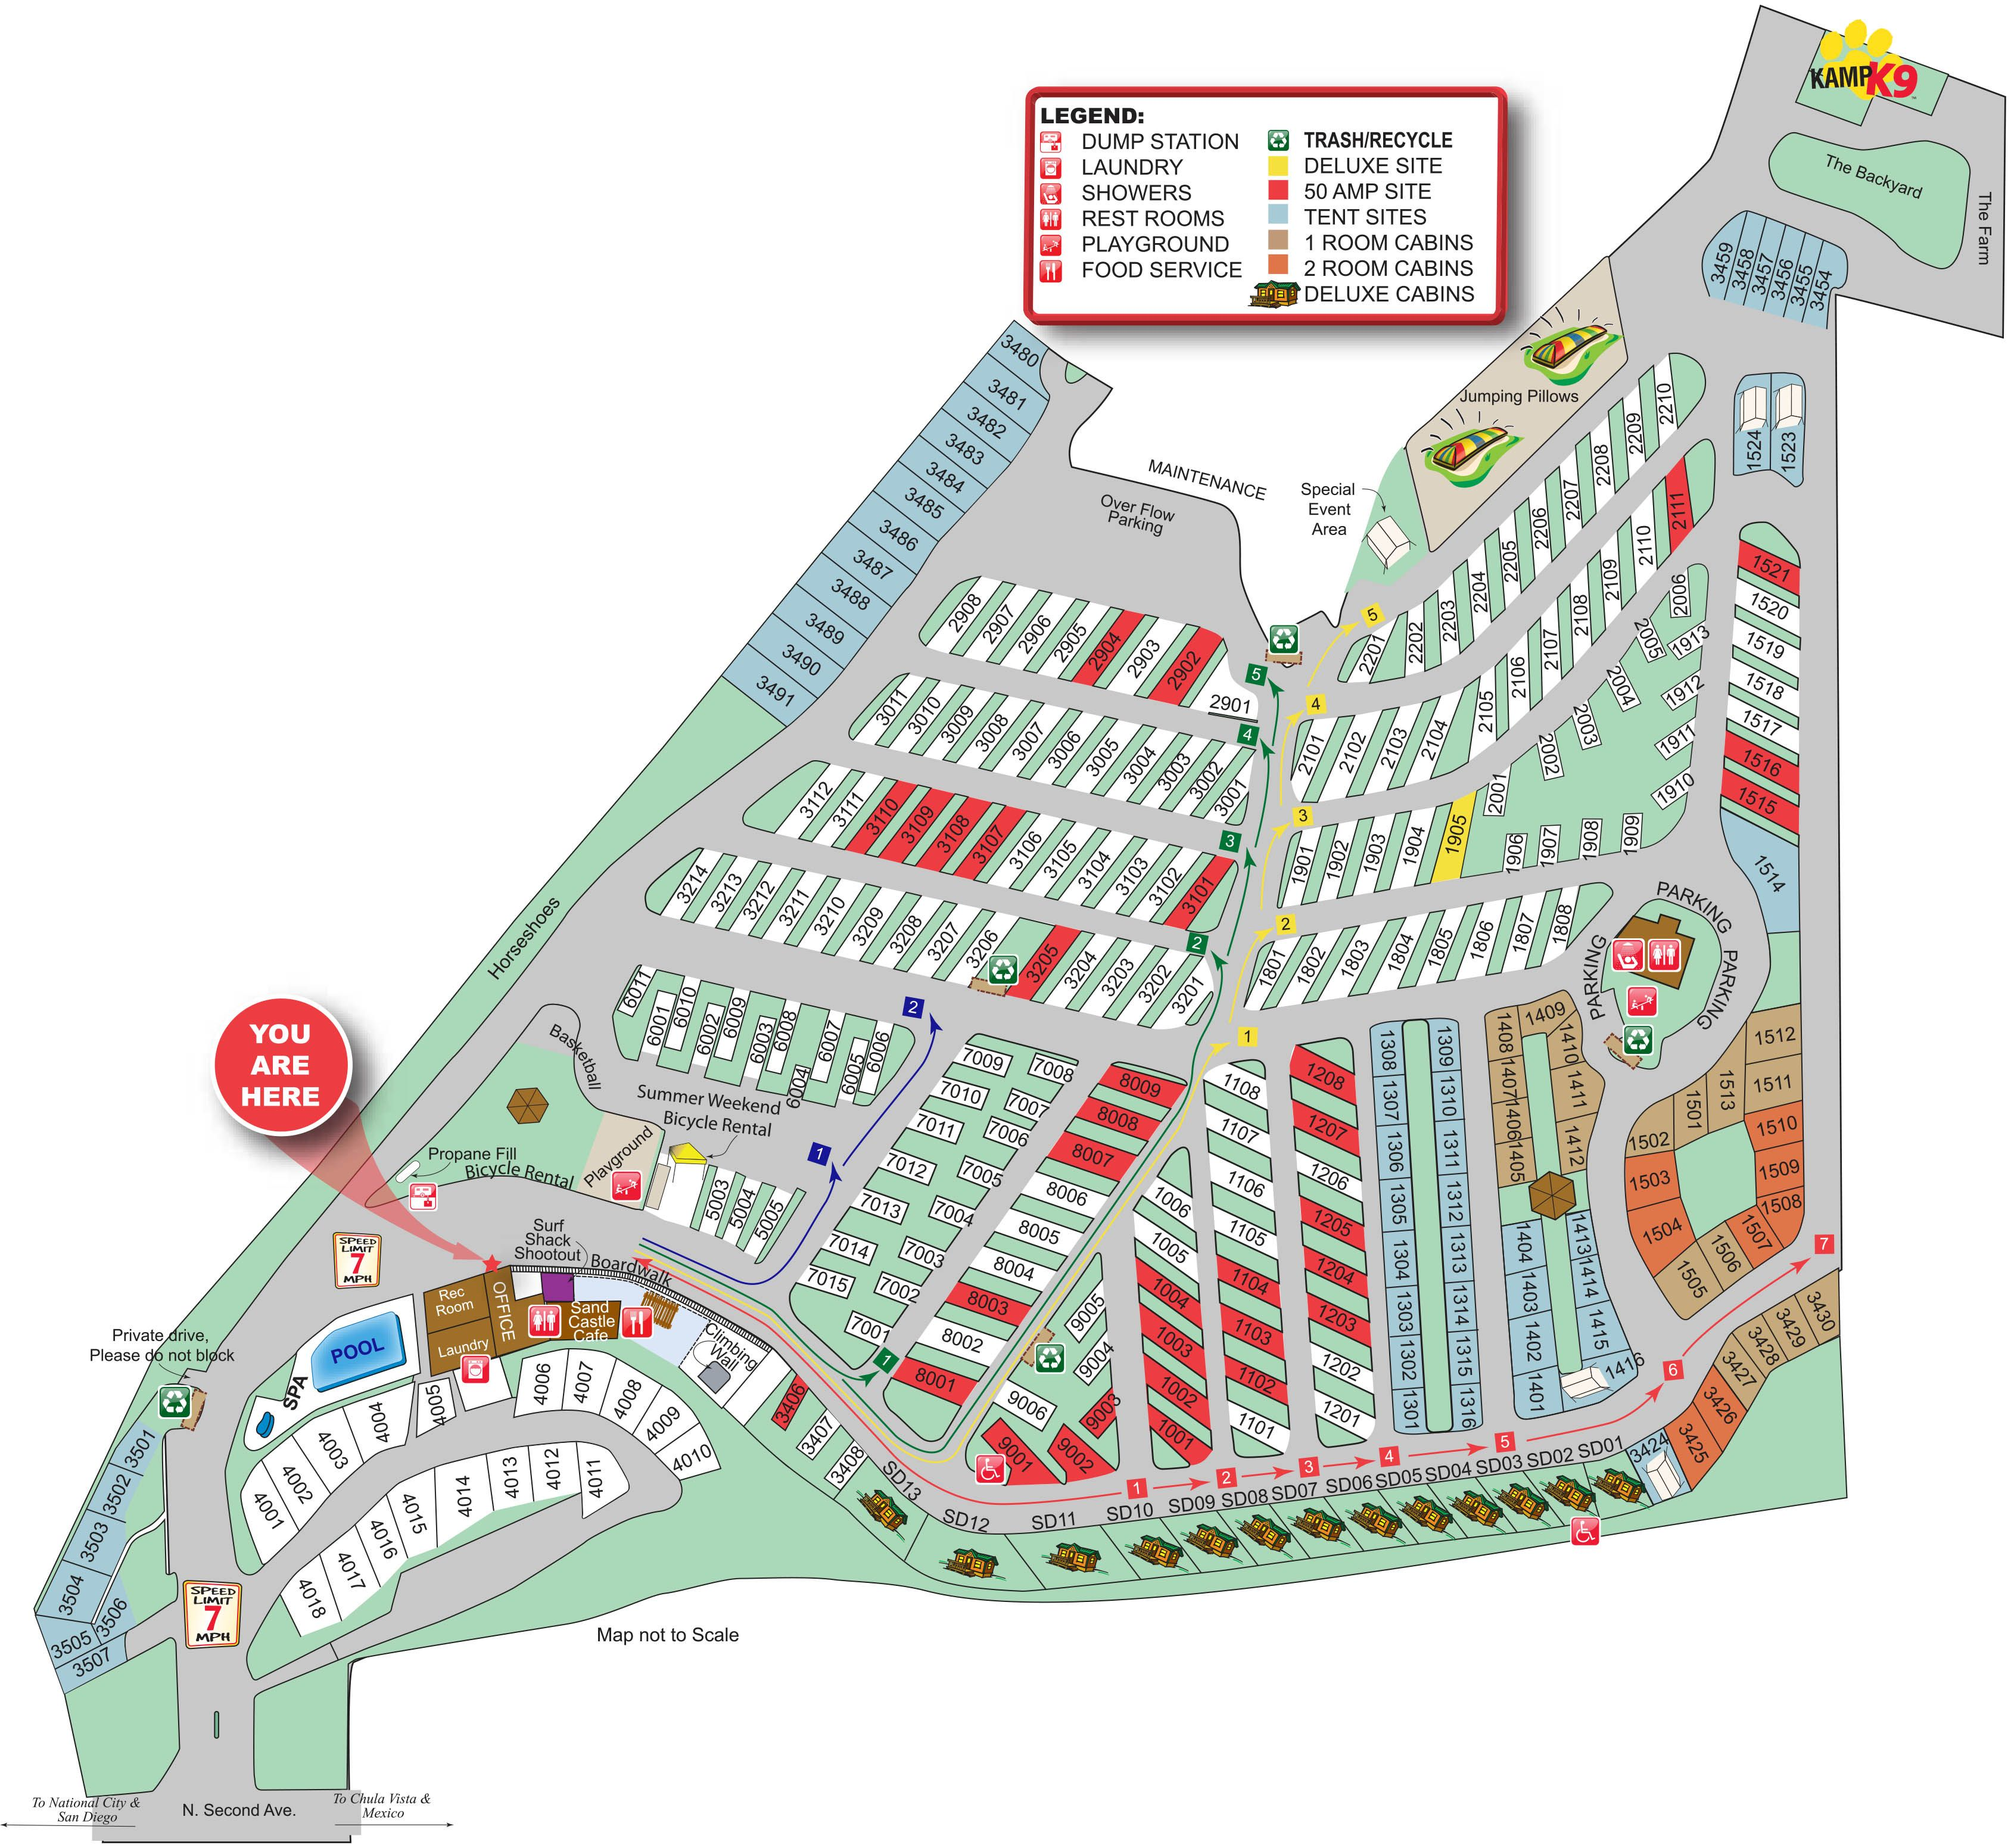 Chula Vista KOA Campground Site Map Summertime Pinterest - Map of koa campgrounds in us